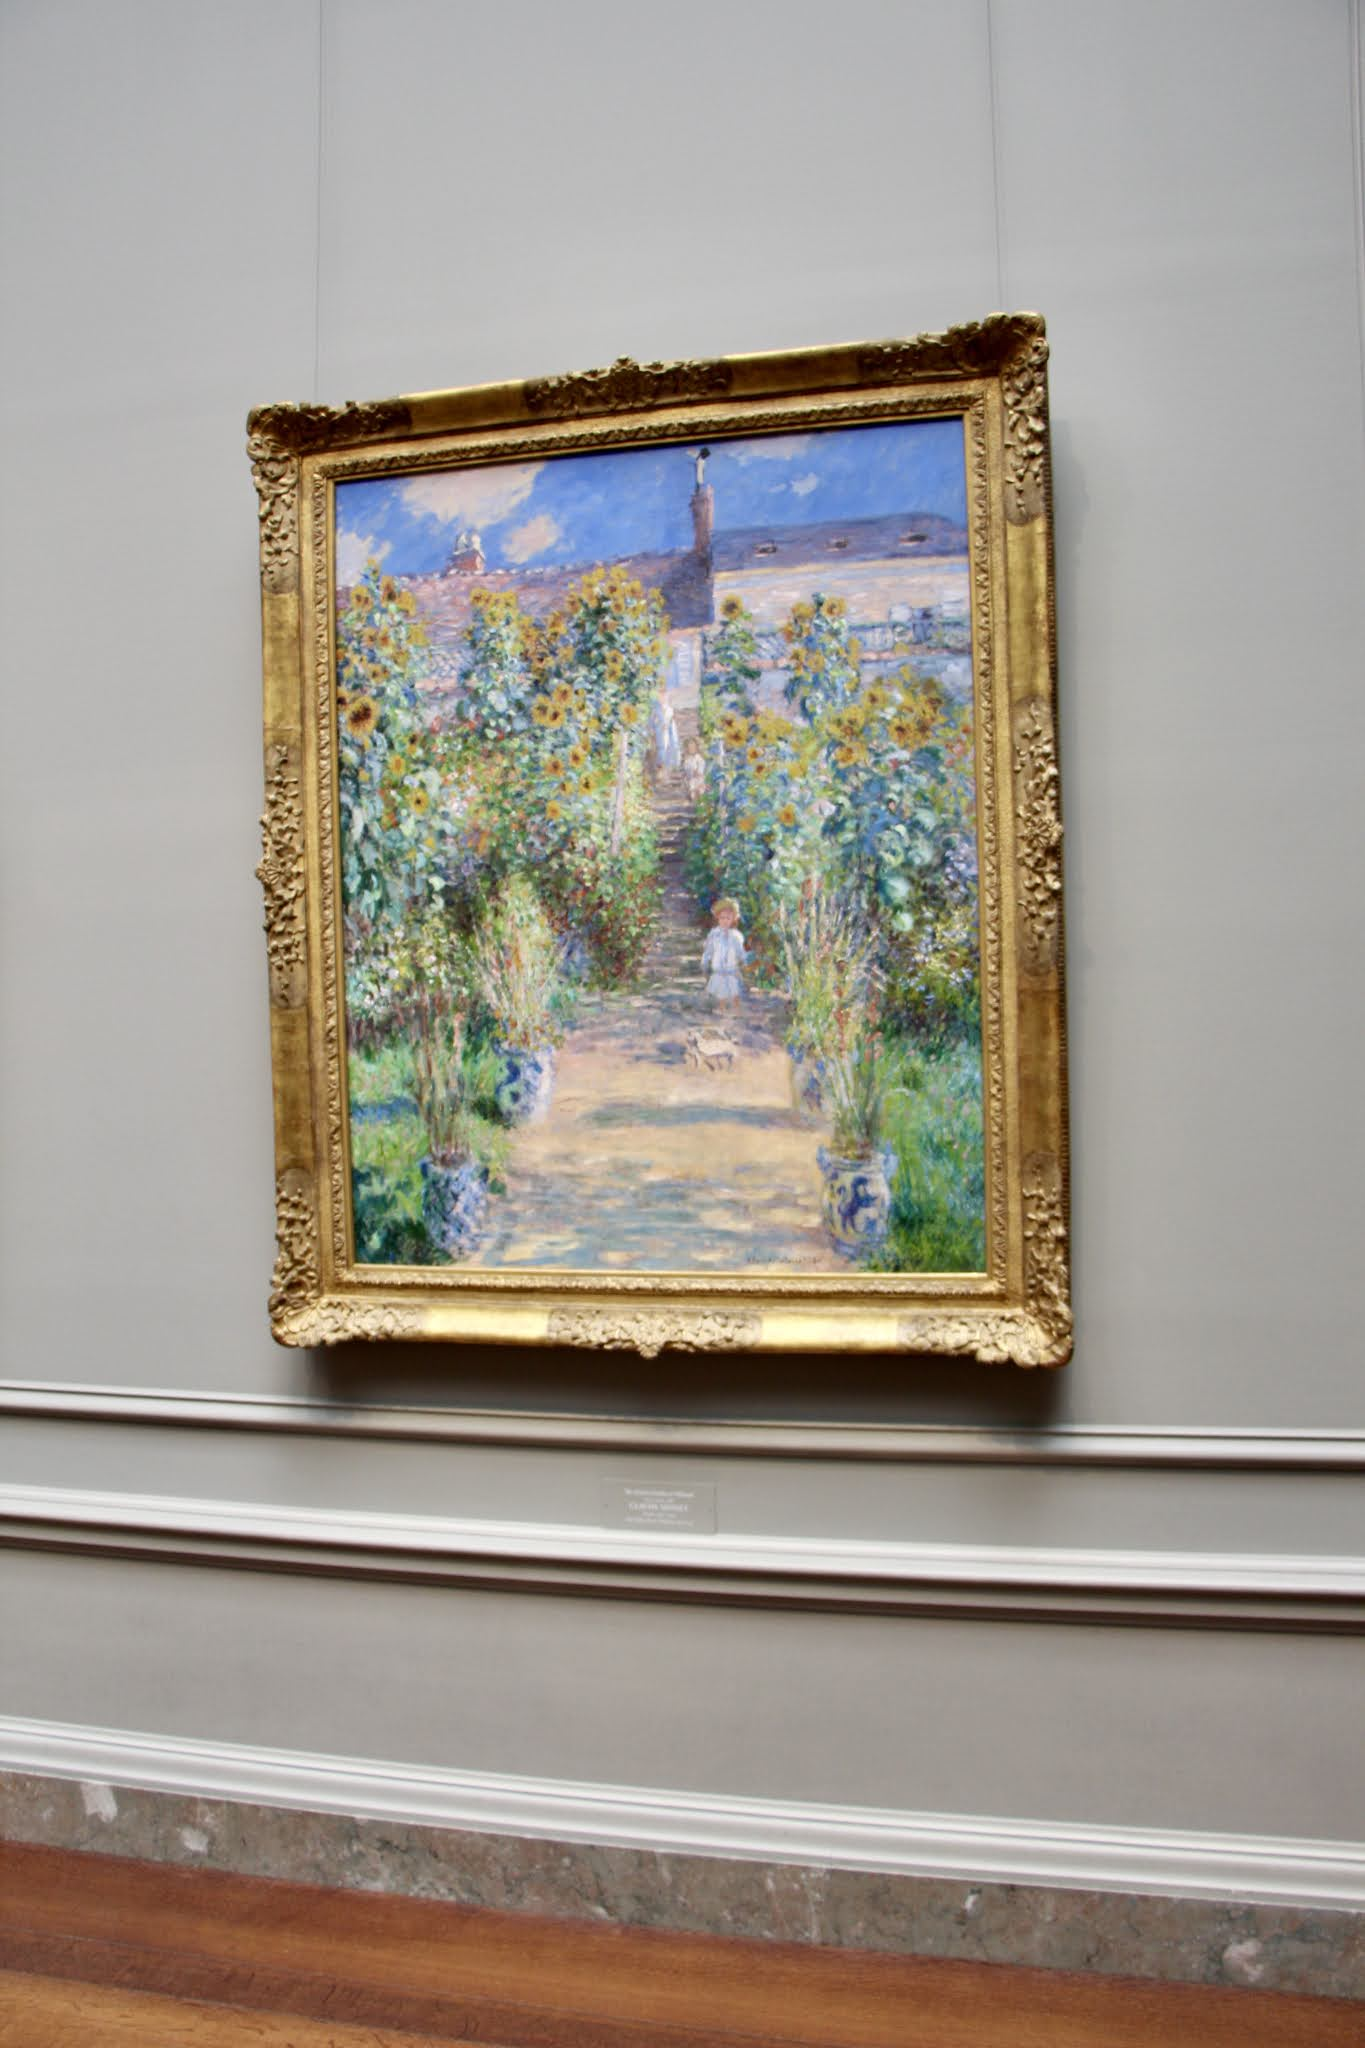 National Gallery, claude monet, impressionism, dc travel guide